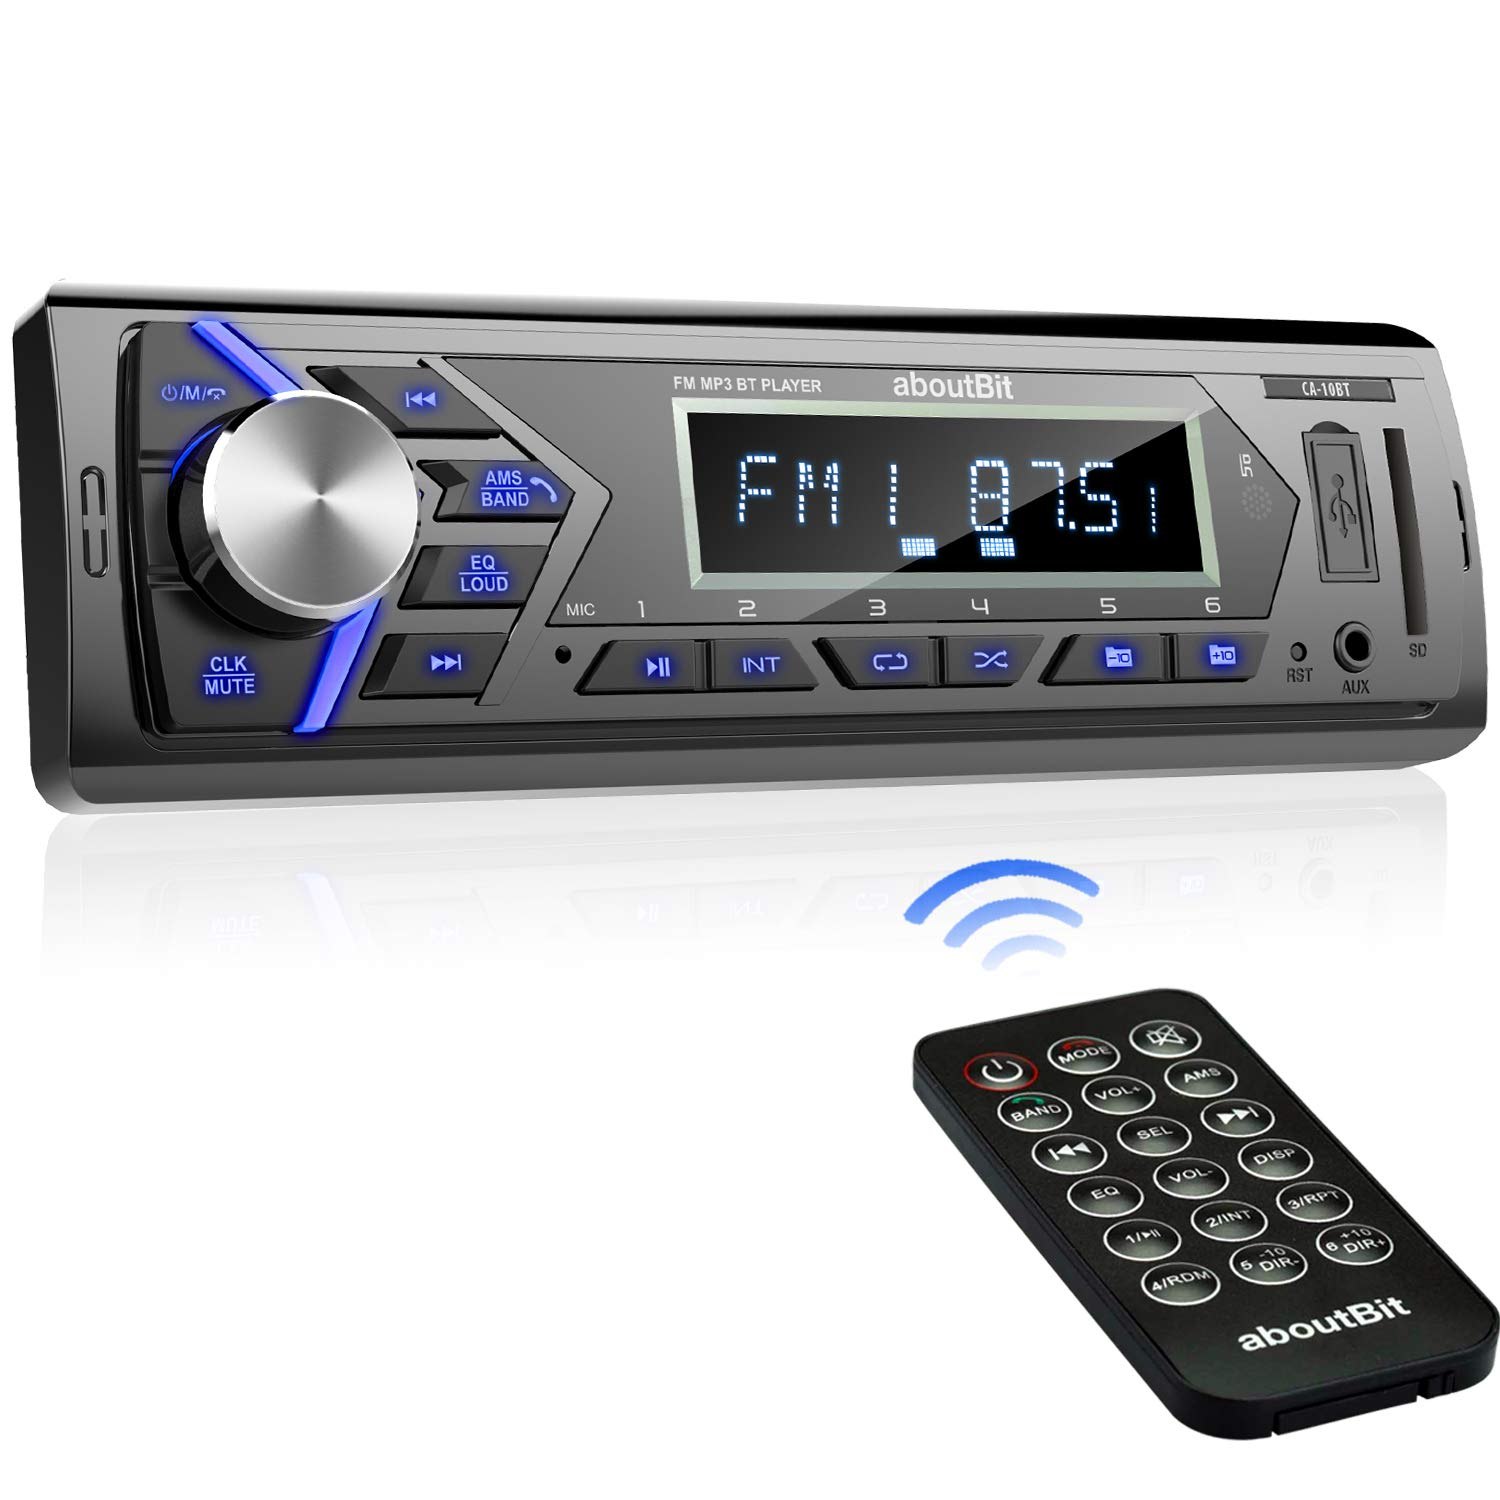 Bluetooth Car Stereo Radio Receiver,Single Din Mechless Digital Media Receiver Support FM/AM/USB/SD/FLAC/MP3/Aux-in with 7 Color Backlit,Wireless Remote Control by aboutBit